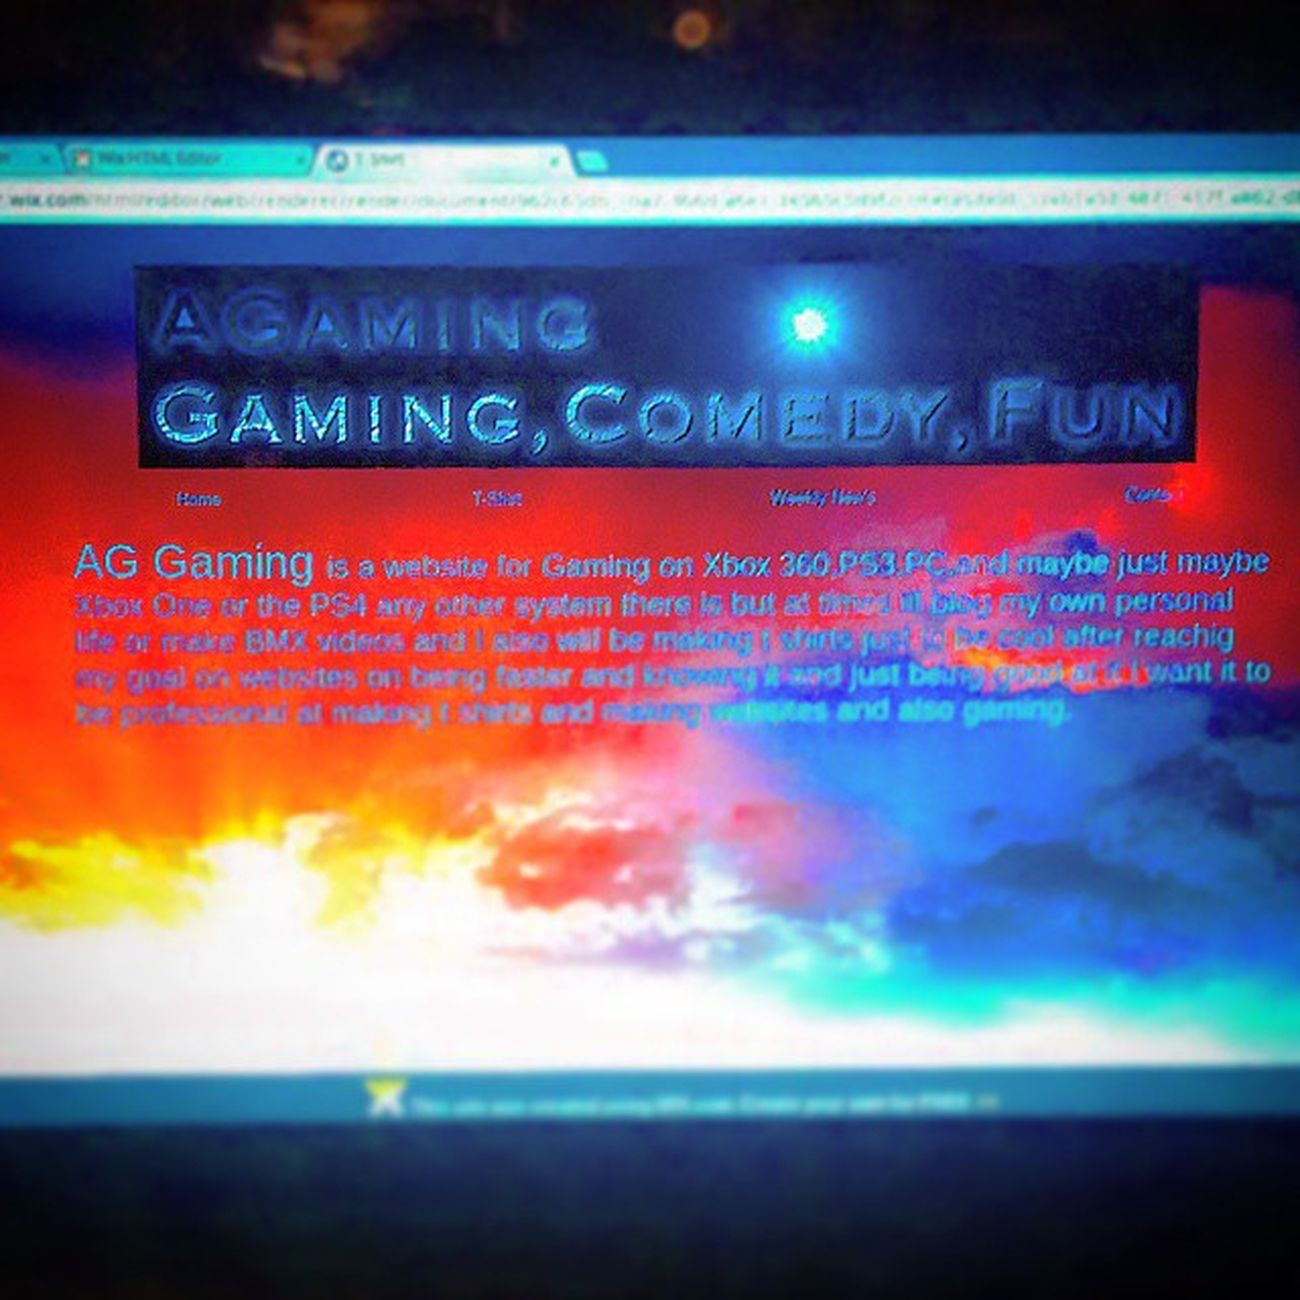 So close..... AGaming Webiste Comingsoon Cantwait GamersSite EditingMySite GetSum followforfollow likeforlike TeamAG AGRulez BoredAsHell